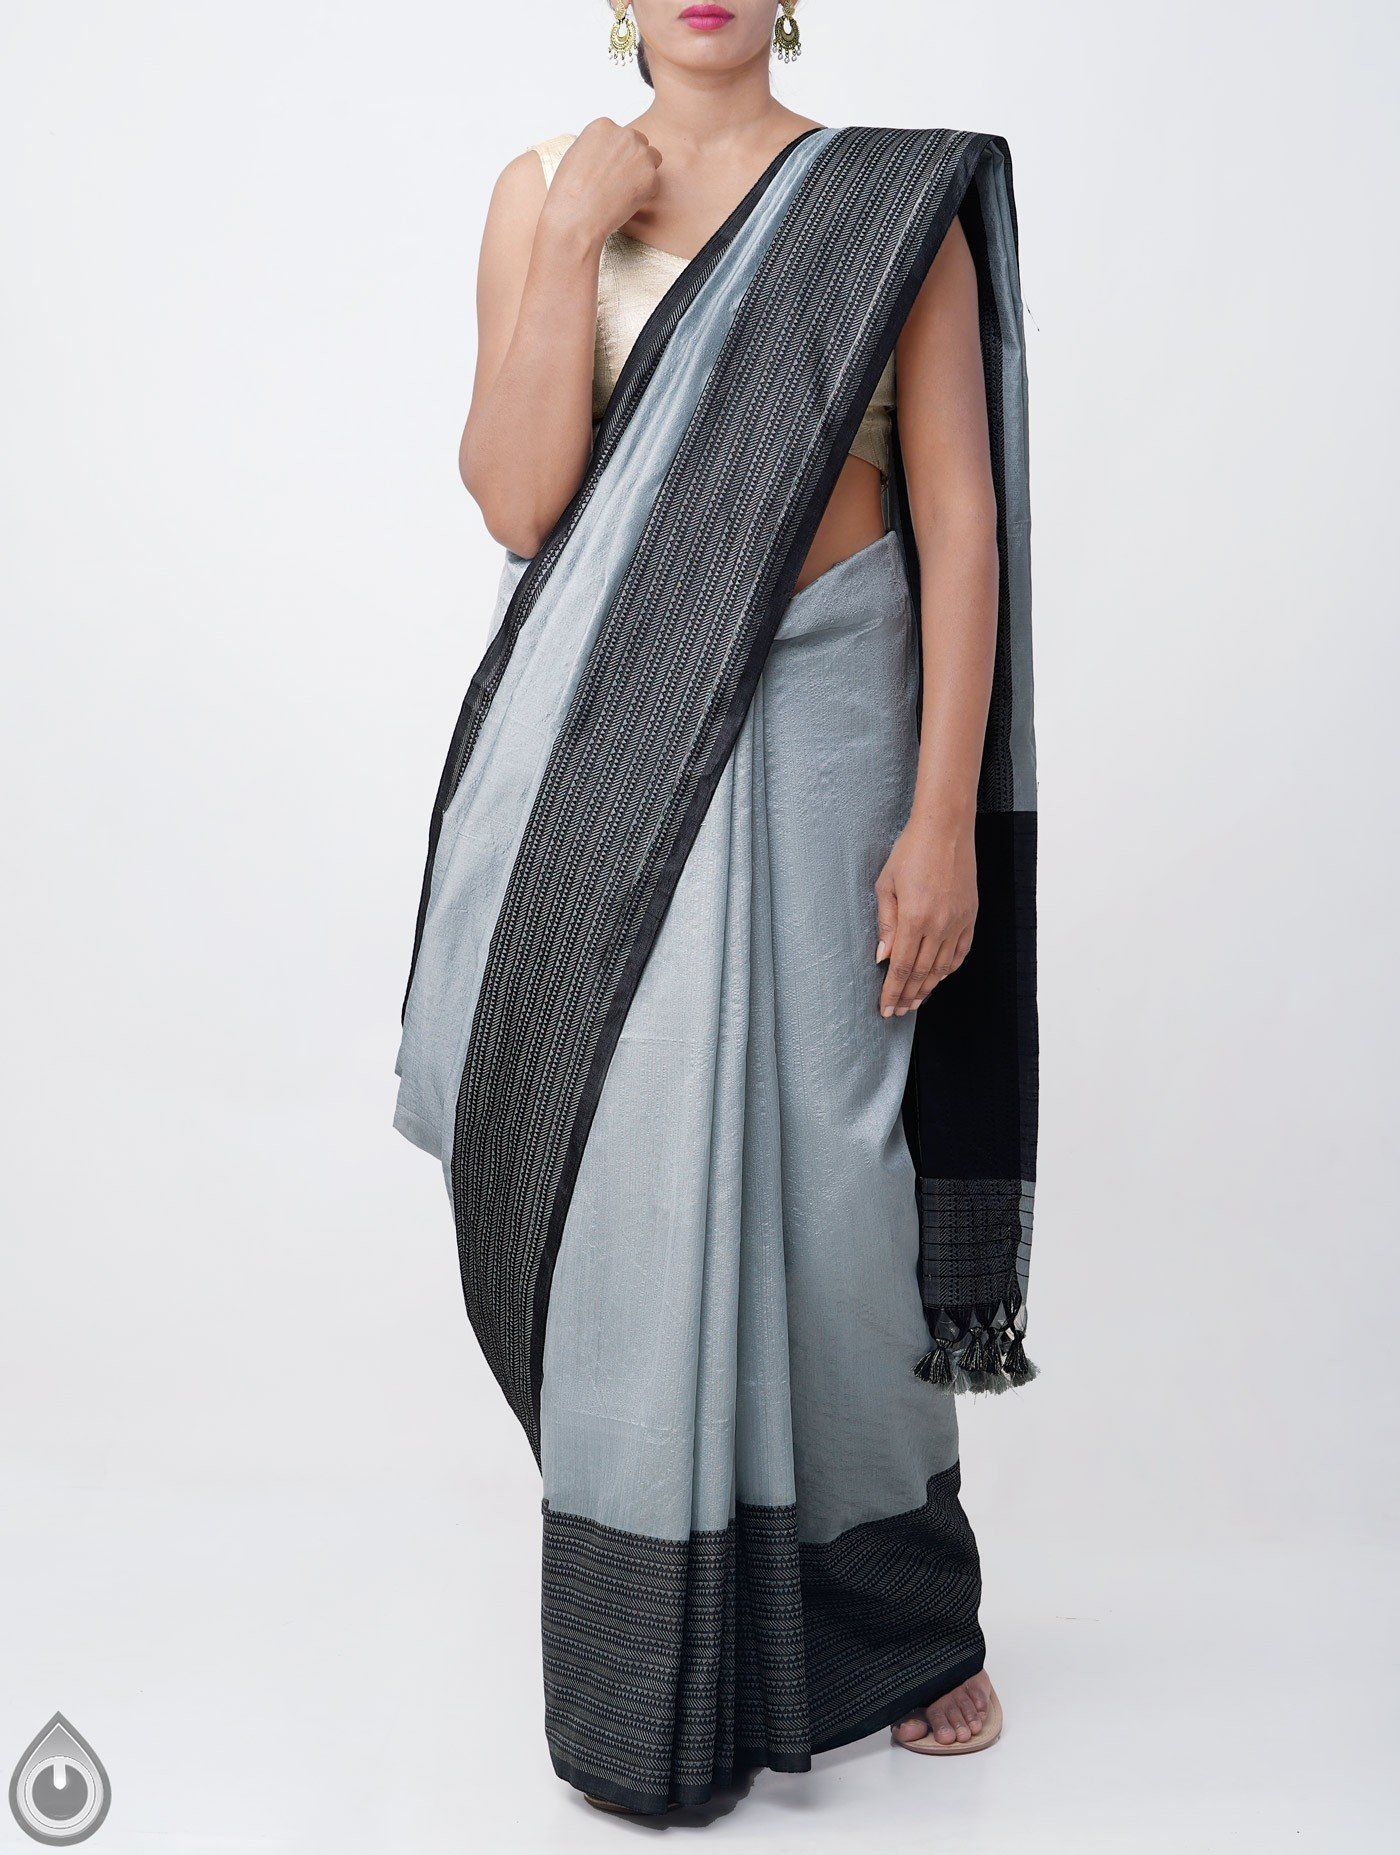 54f41ebb19 ... Weaving Sarees 2019 by unnatisilks. It has thread woven black elegant  pallu with tassels and thread woven black border. The